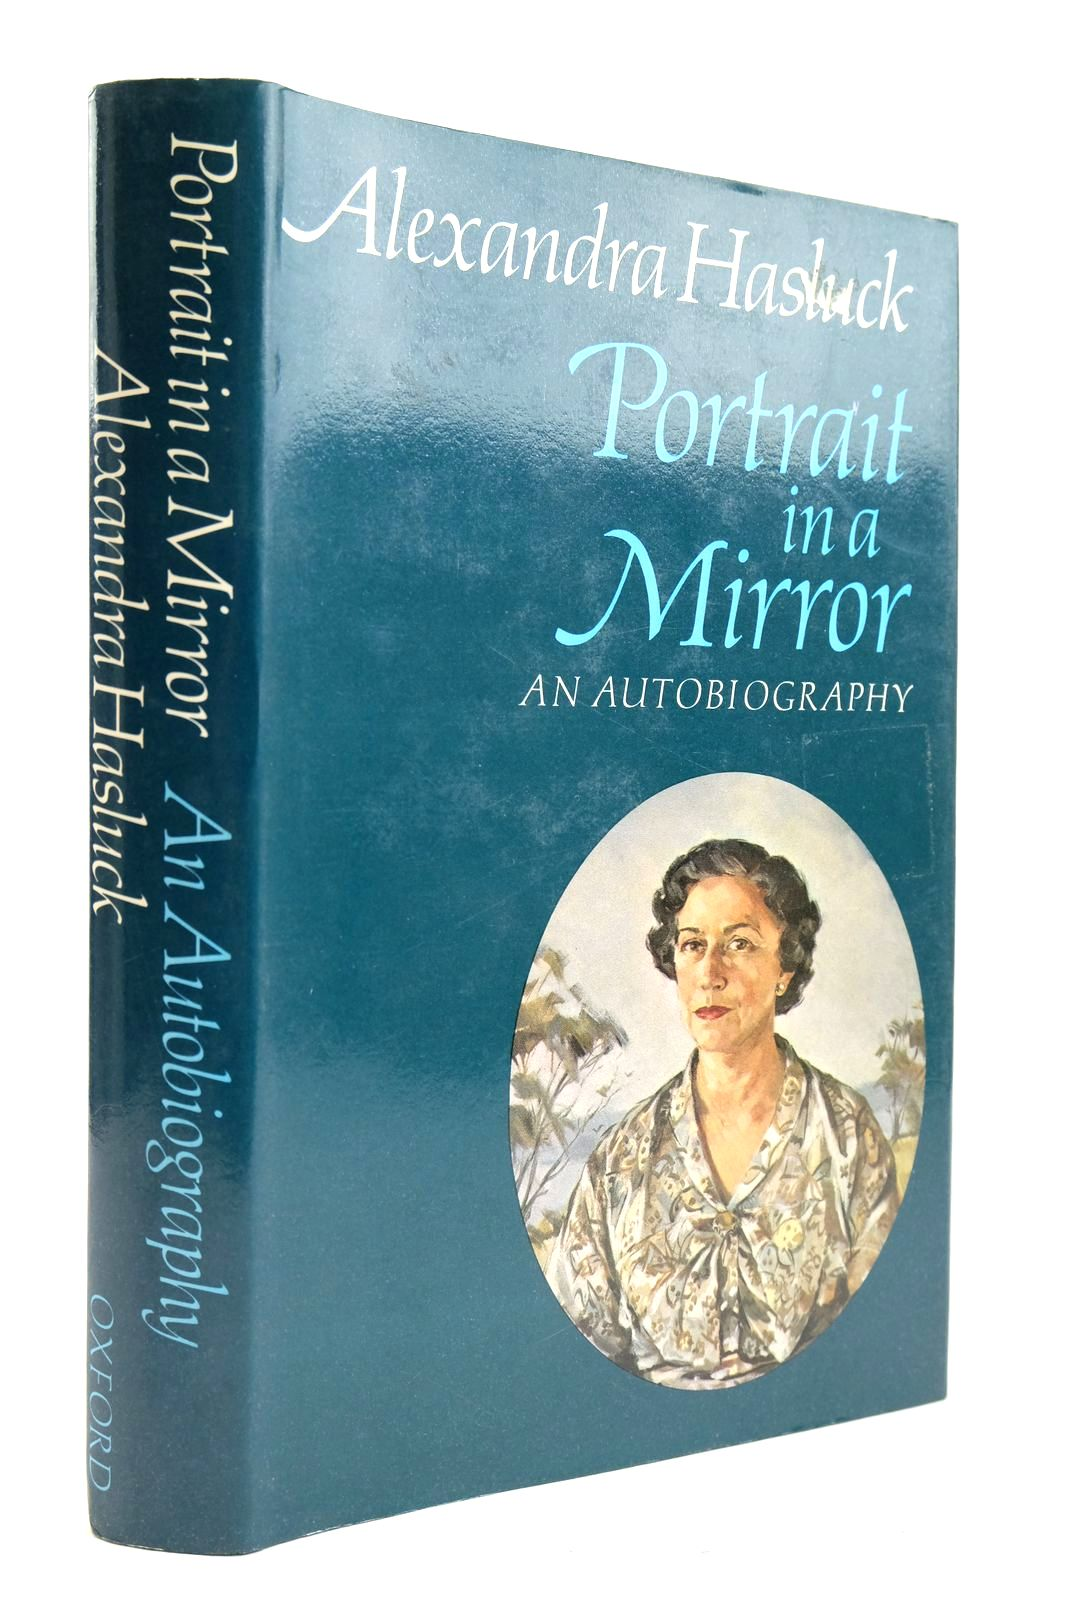 Photo of PORTRAIT IN A MIRROR AN AUTOBIOGRAPHY written by Hasluck, Alexandra published by Oxford University Press (STOCK CODE: 2132943)  for sale by Stella & Rose's Books